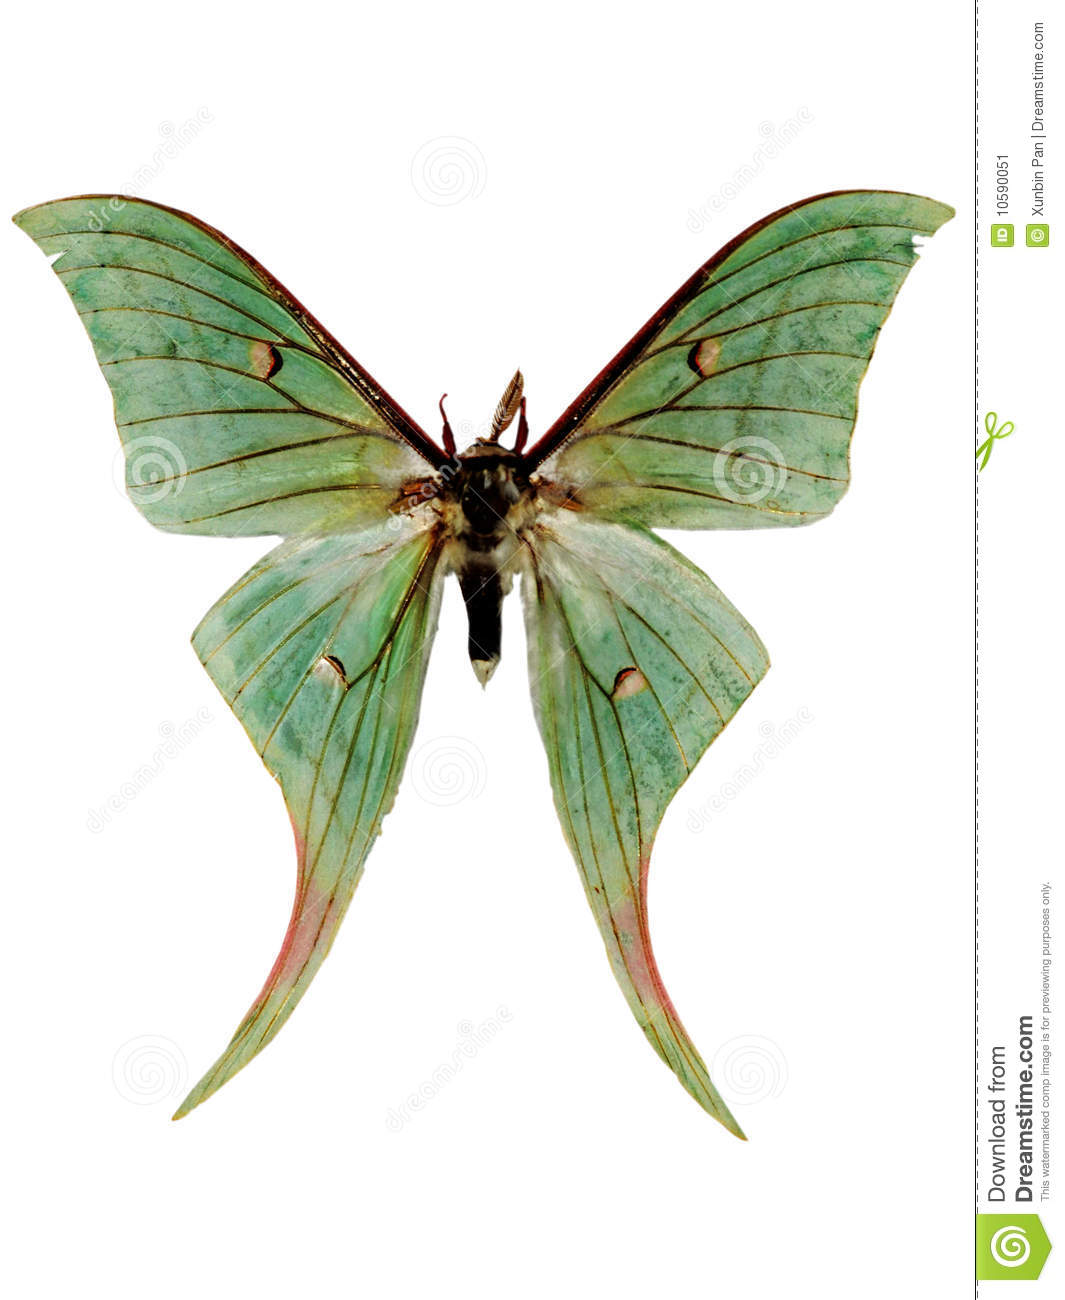 Luna Moth clipart #10, Download drawings